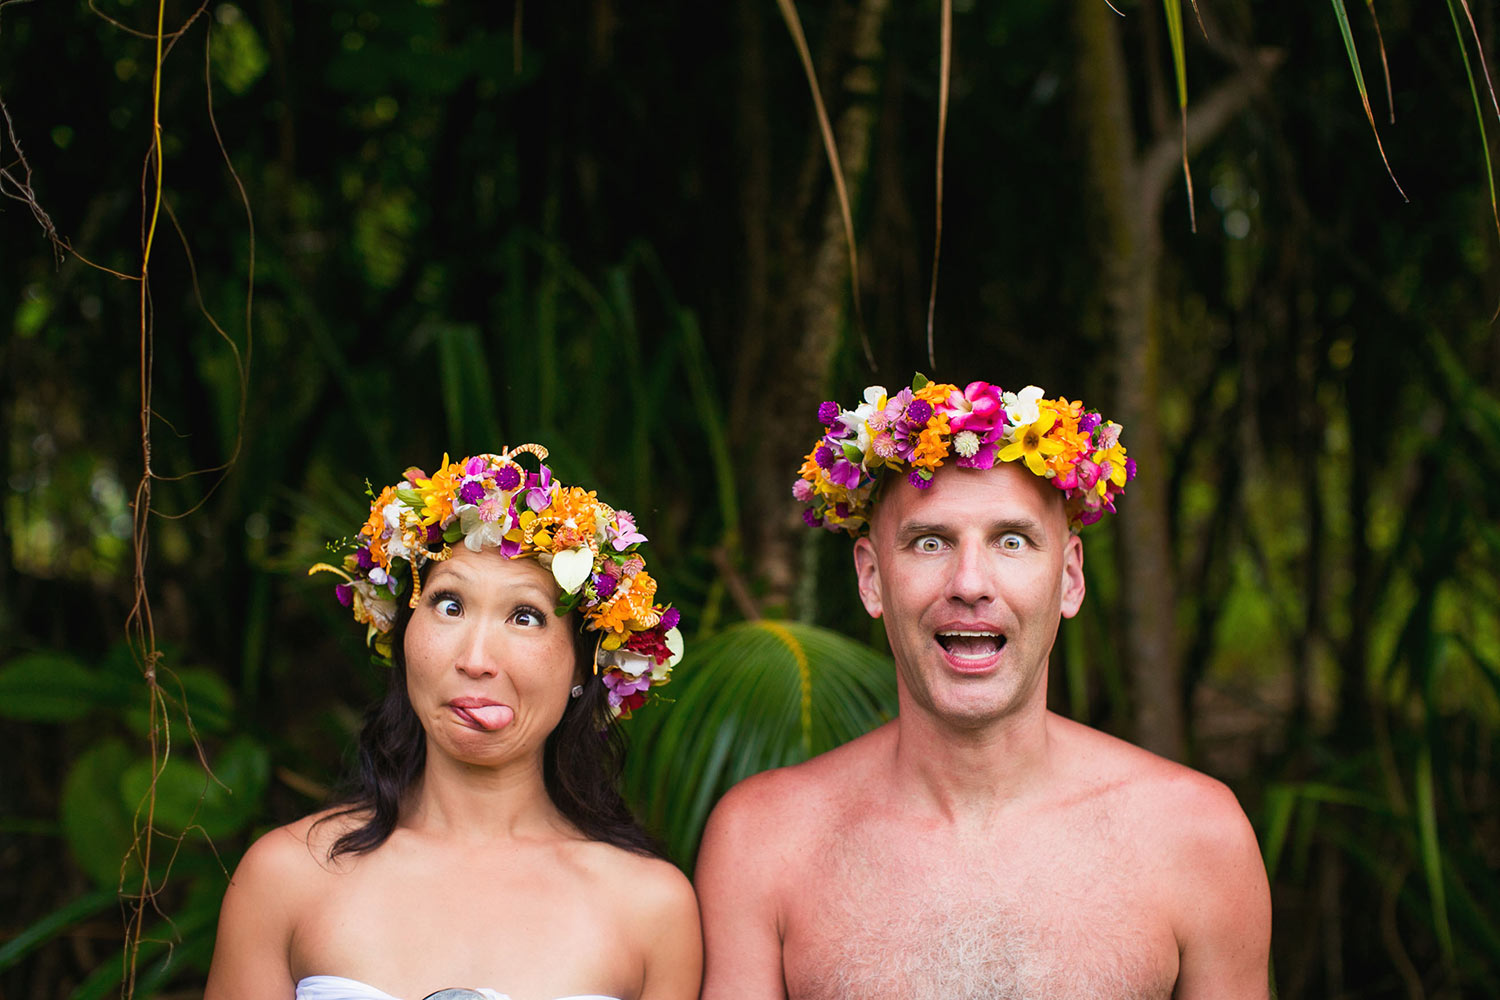 Silly portrait of couple in tropical floral crowns, by Callaway Gable